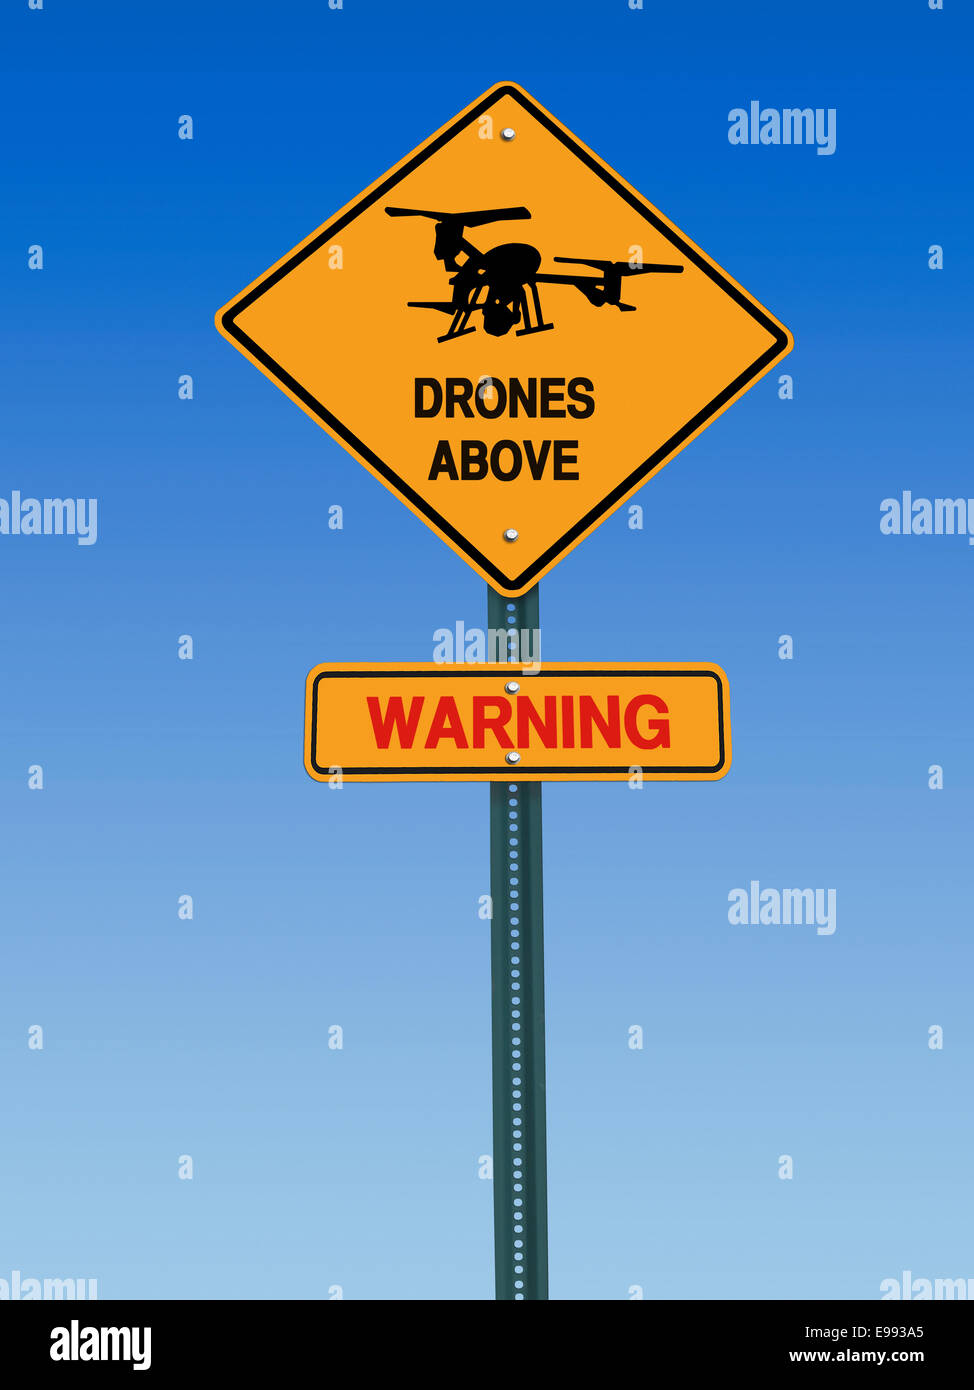 conceptual sign with drone symbol and danger warning over blue sky - Stock Image